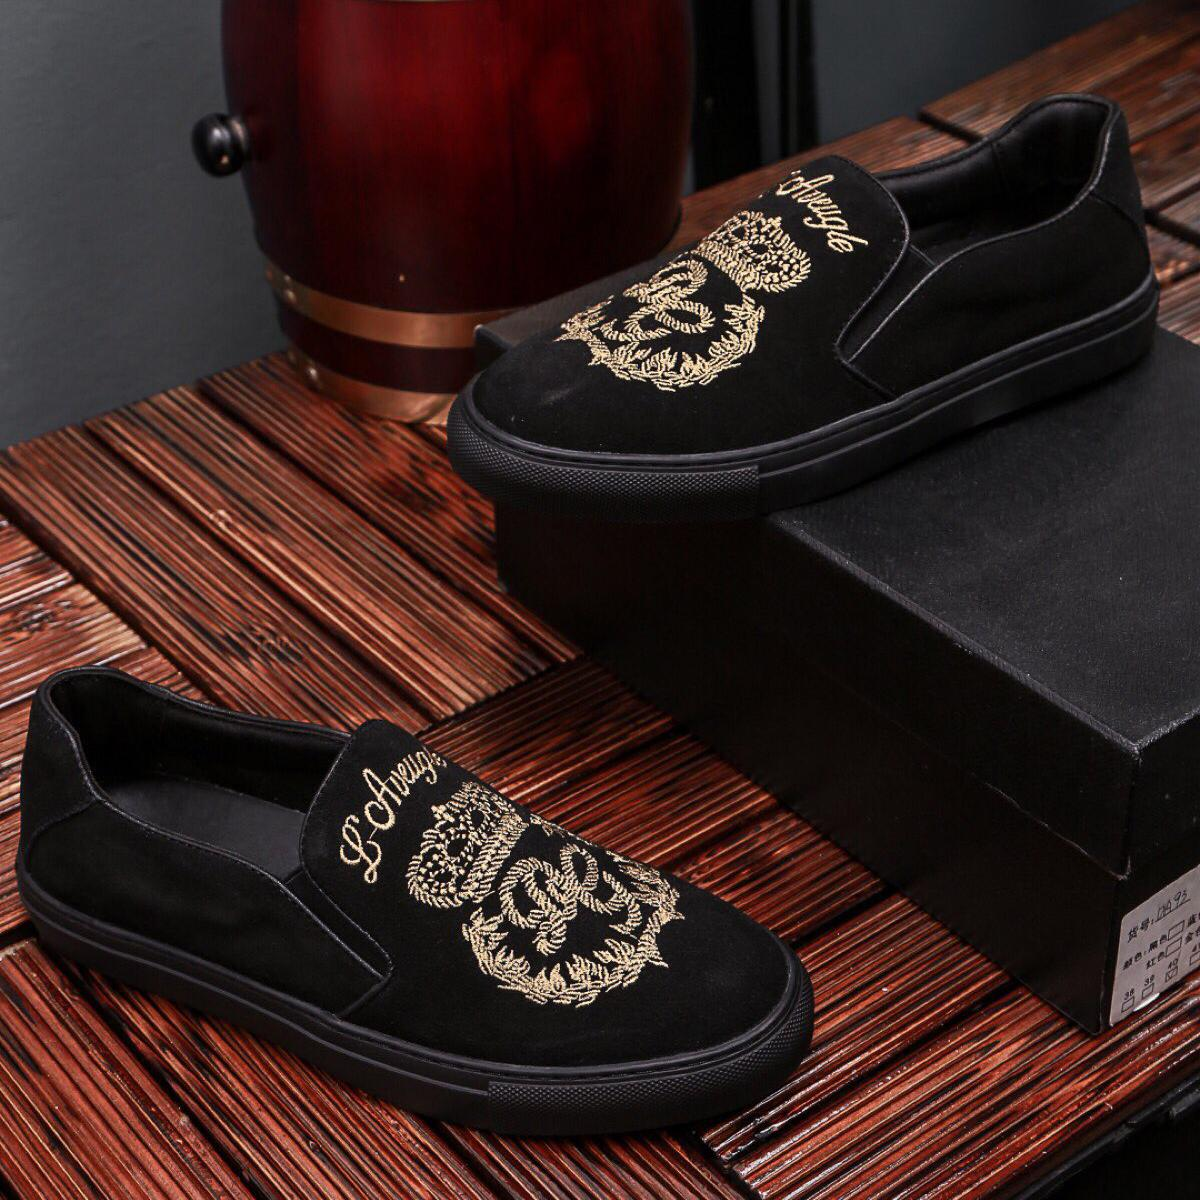 2019 New Mens Designer Luxury Casual Shoes Embroidery Black Golden Slip on Breathable Fashion Shoes Street Style Top Quality with Box 9944CE